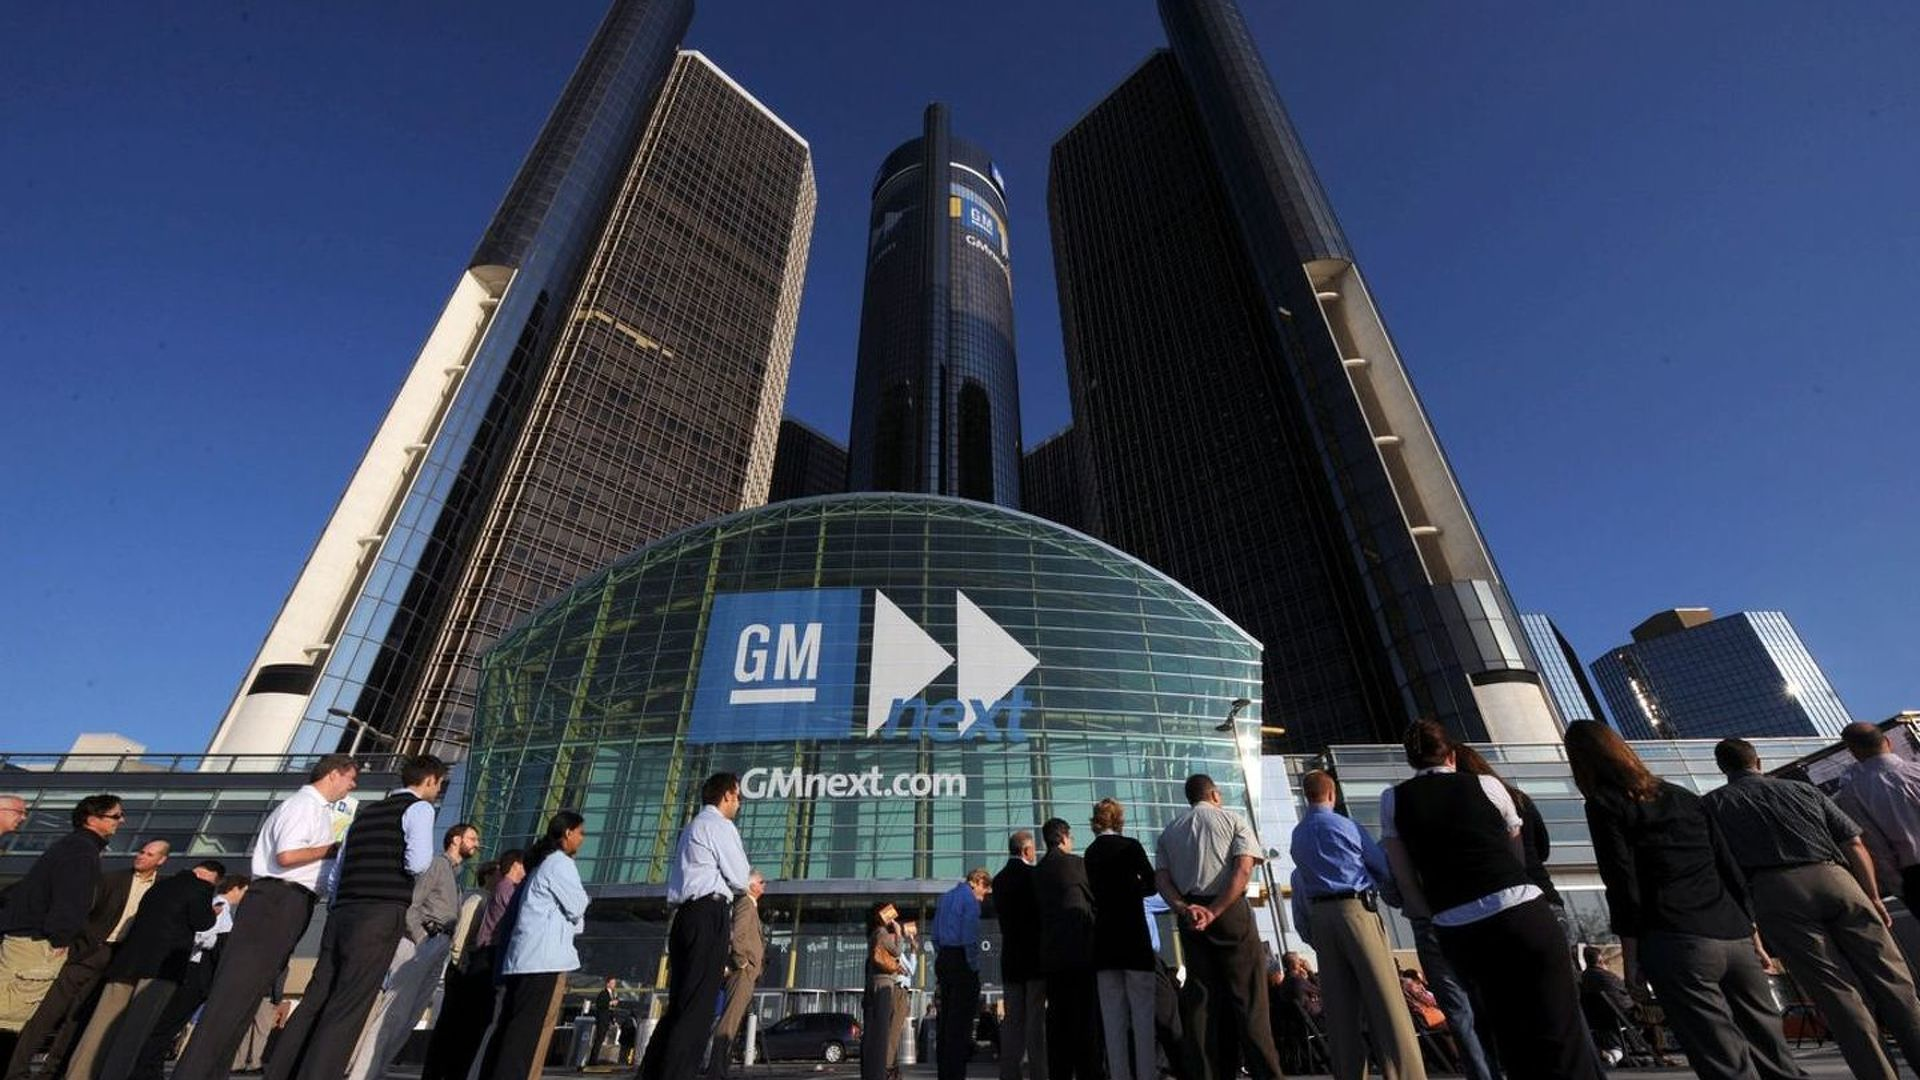 GM headed for a record-breaking IPO